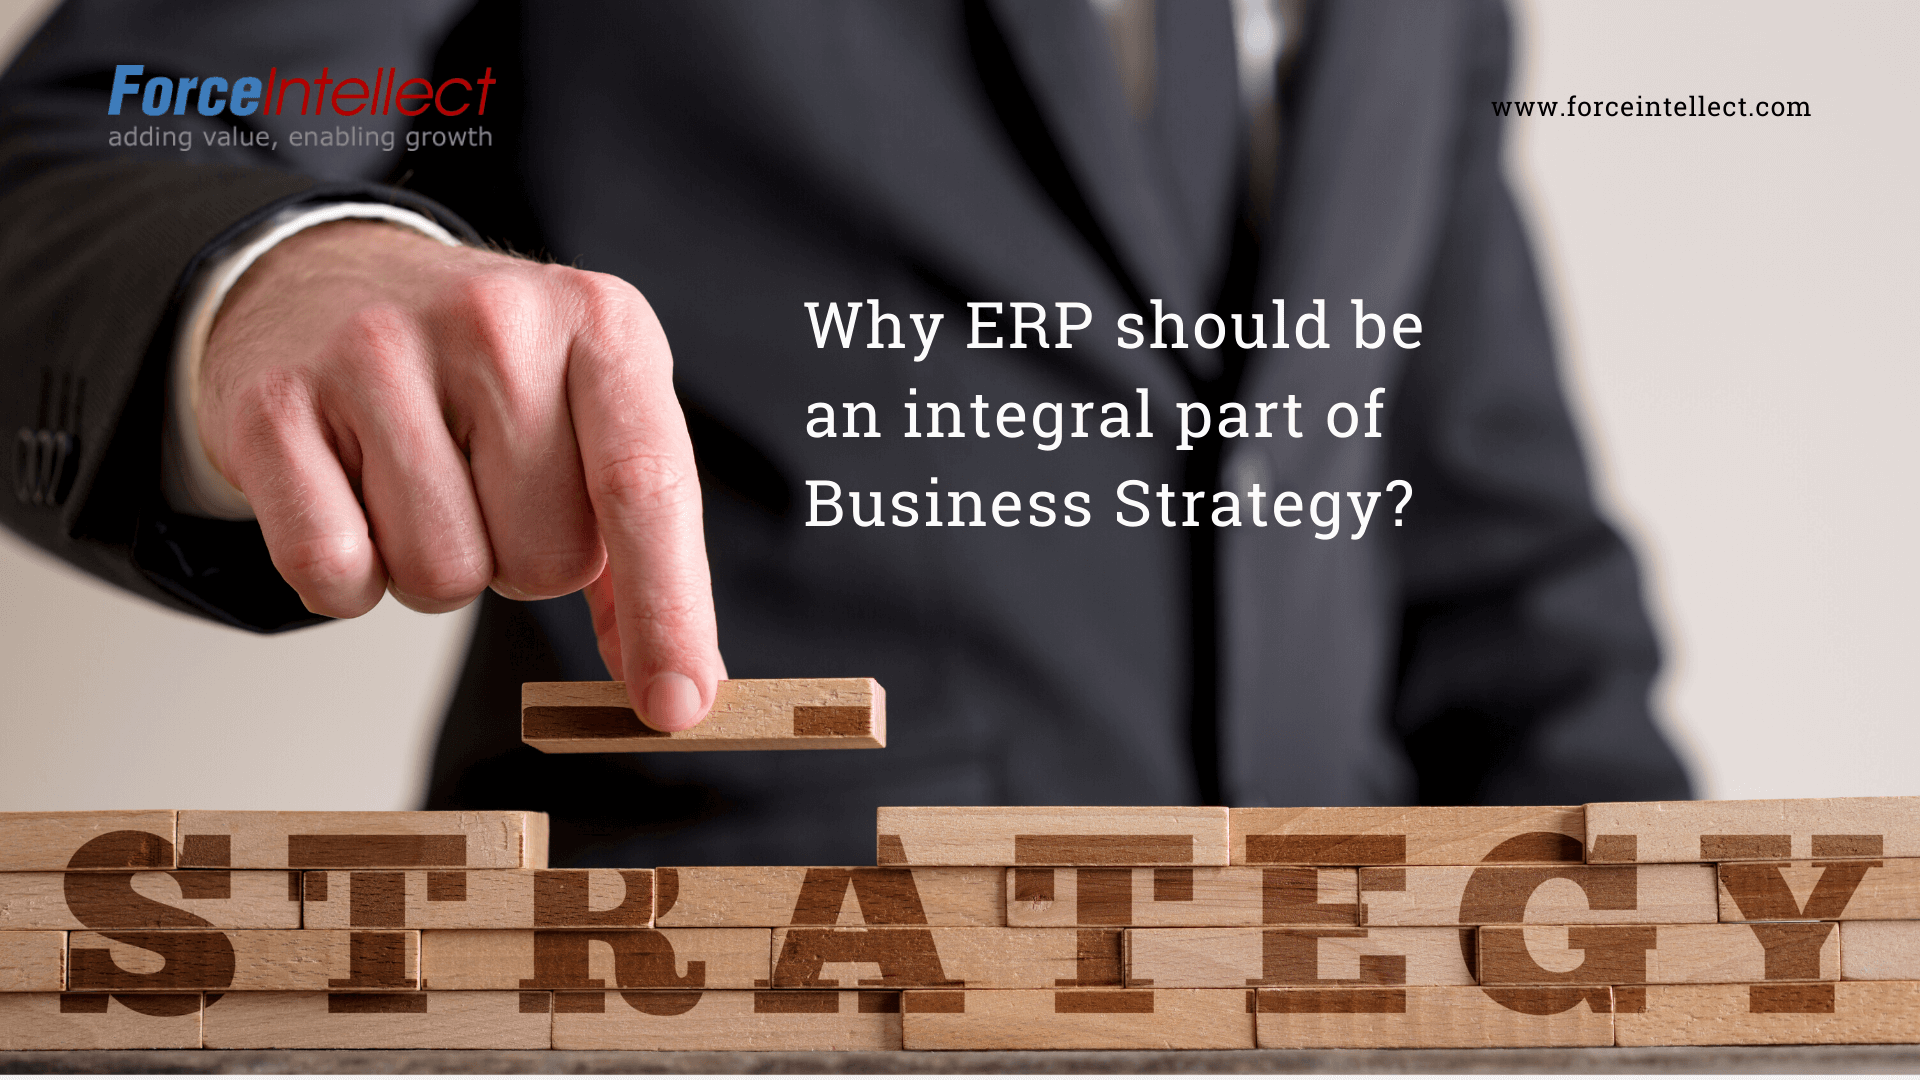 Business Strategy ERP alignment